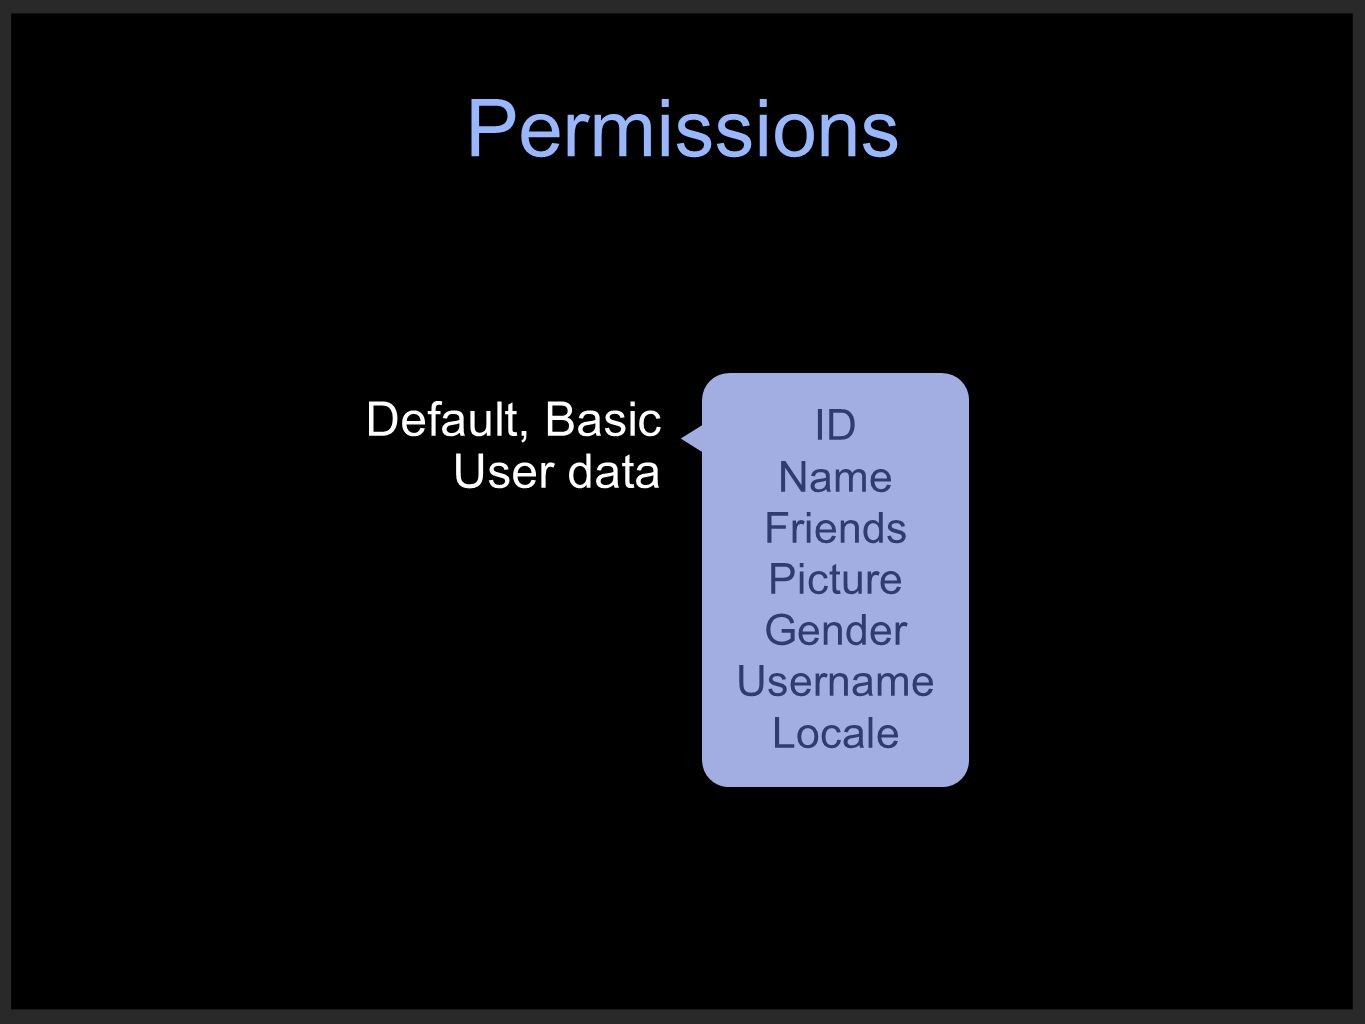 ID Name Friends Picture Gender Username Locale Permissions Default, Basic User data